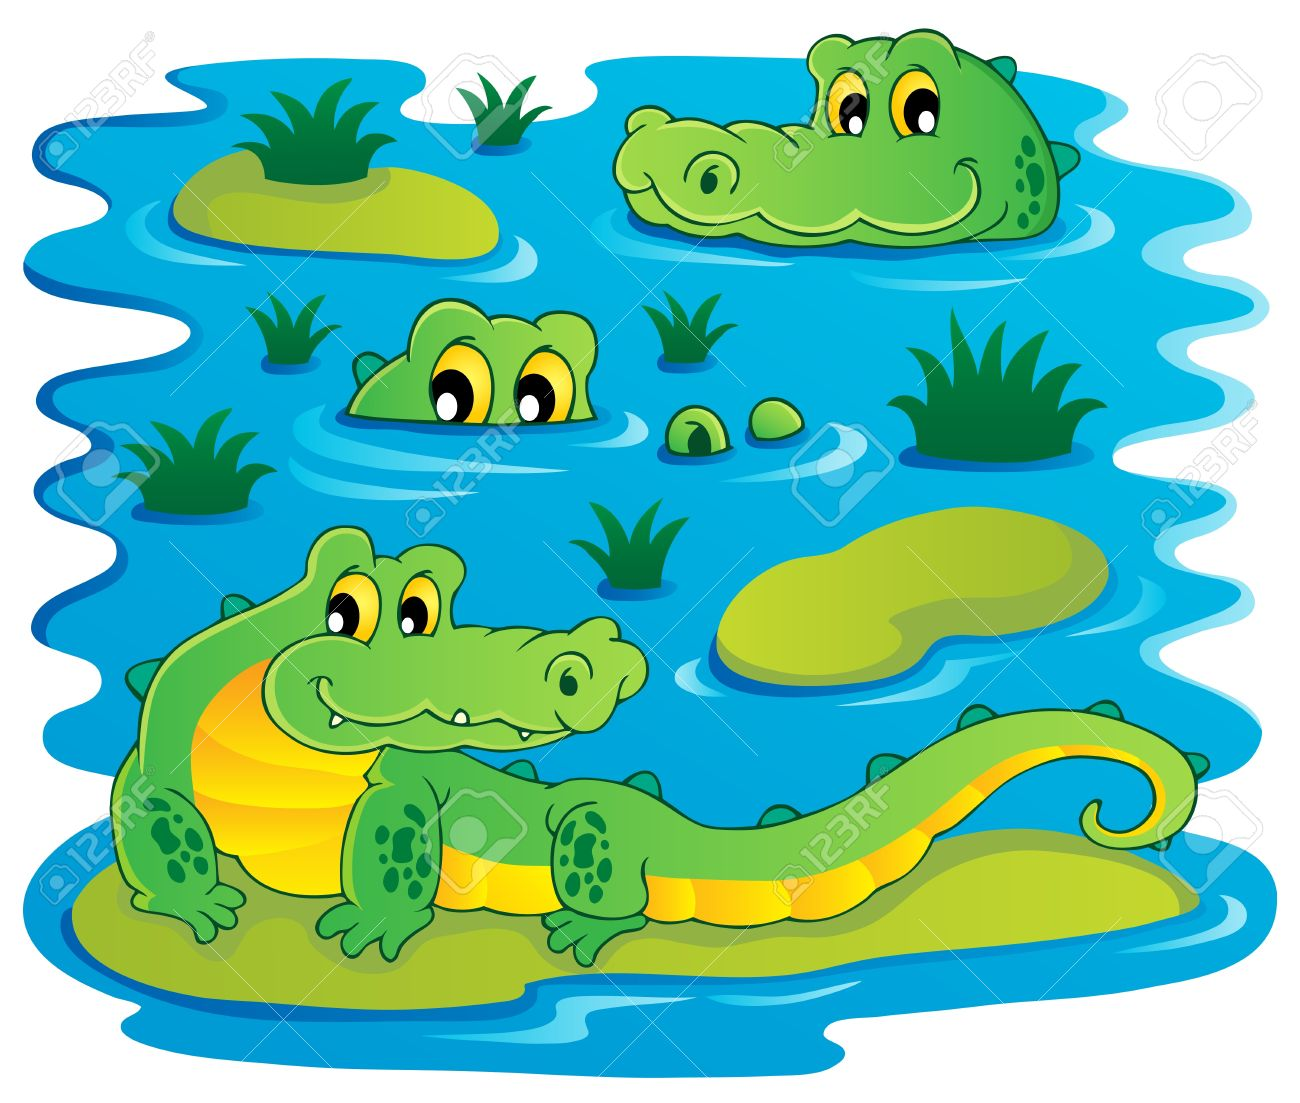 Image with crocodile theme illustration Stock Vector - 16906745